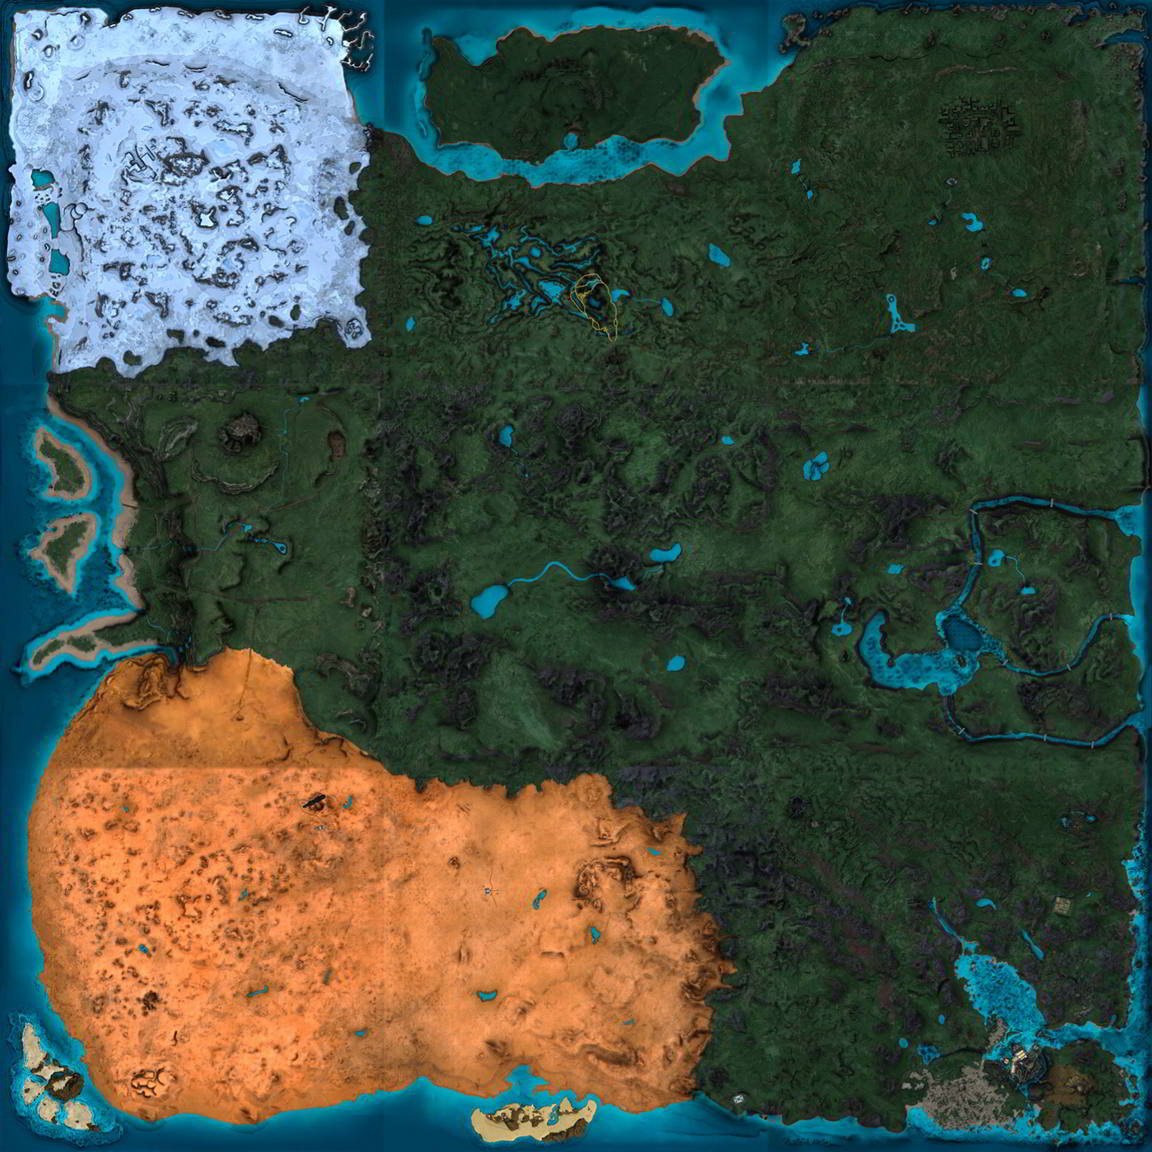 Arkadia map empty enhanced 1152x1152.jpg